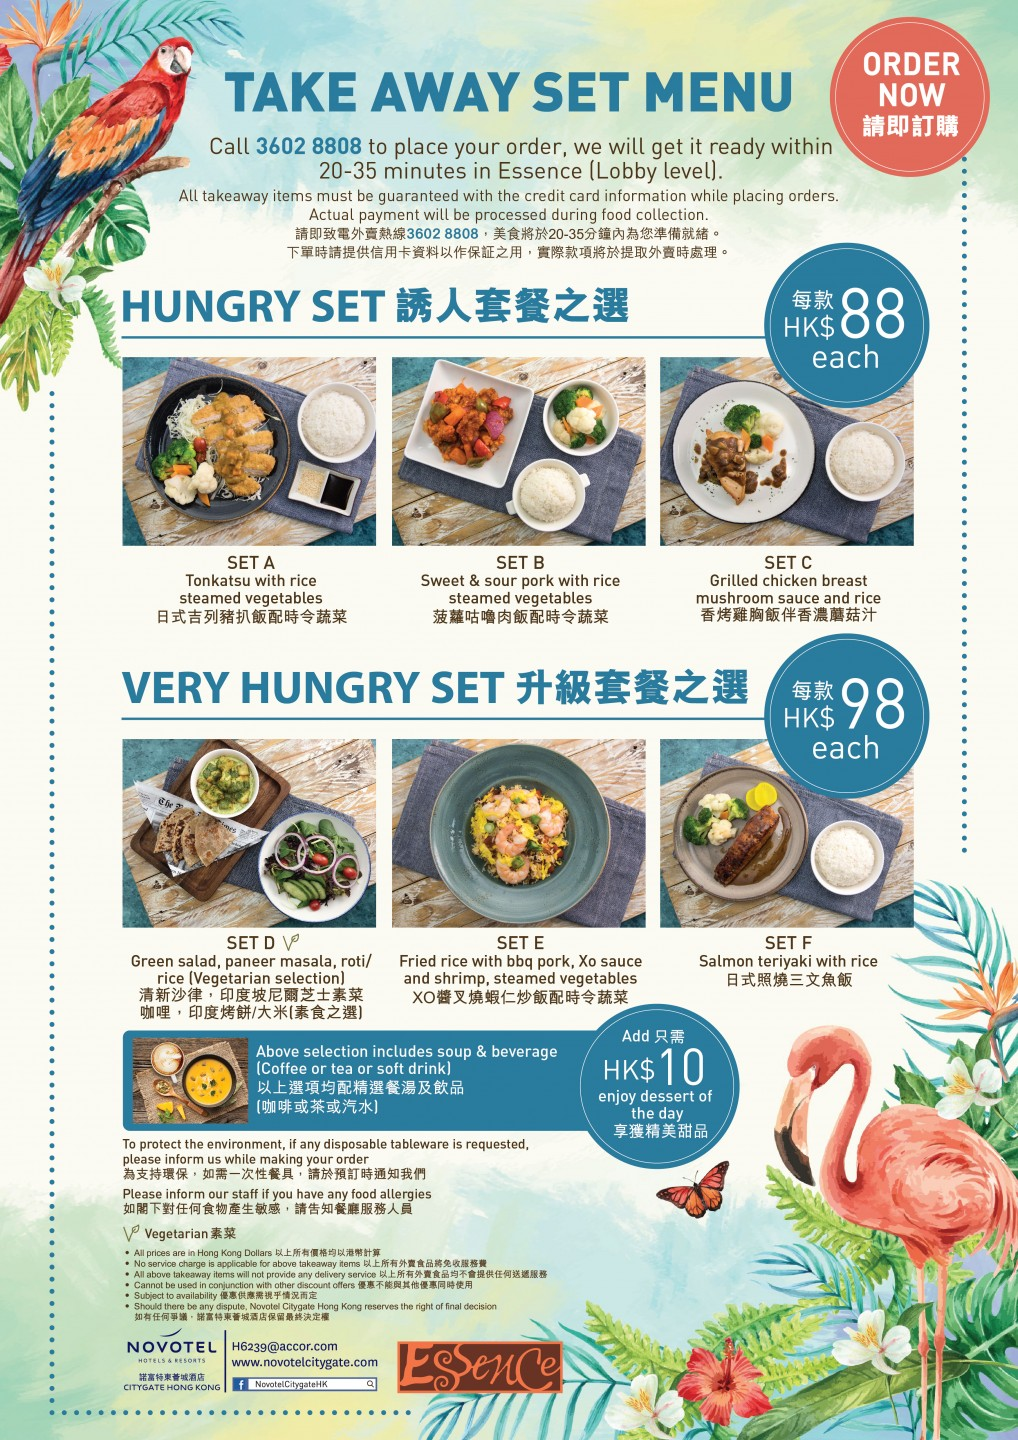 Novotel Citygate︱Essence - Take Away Set Menu